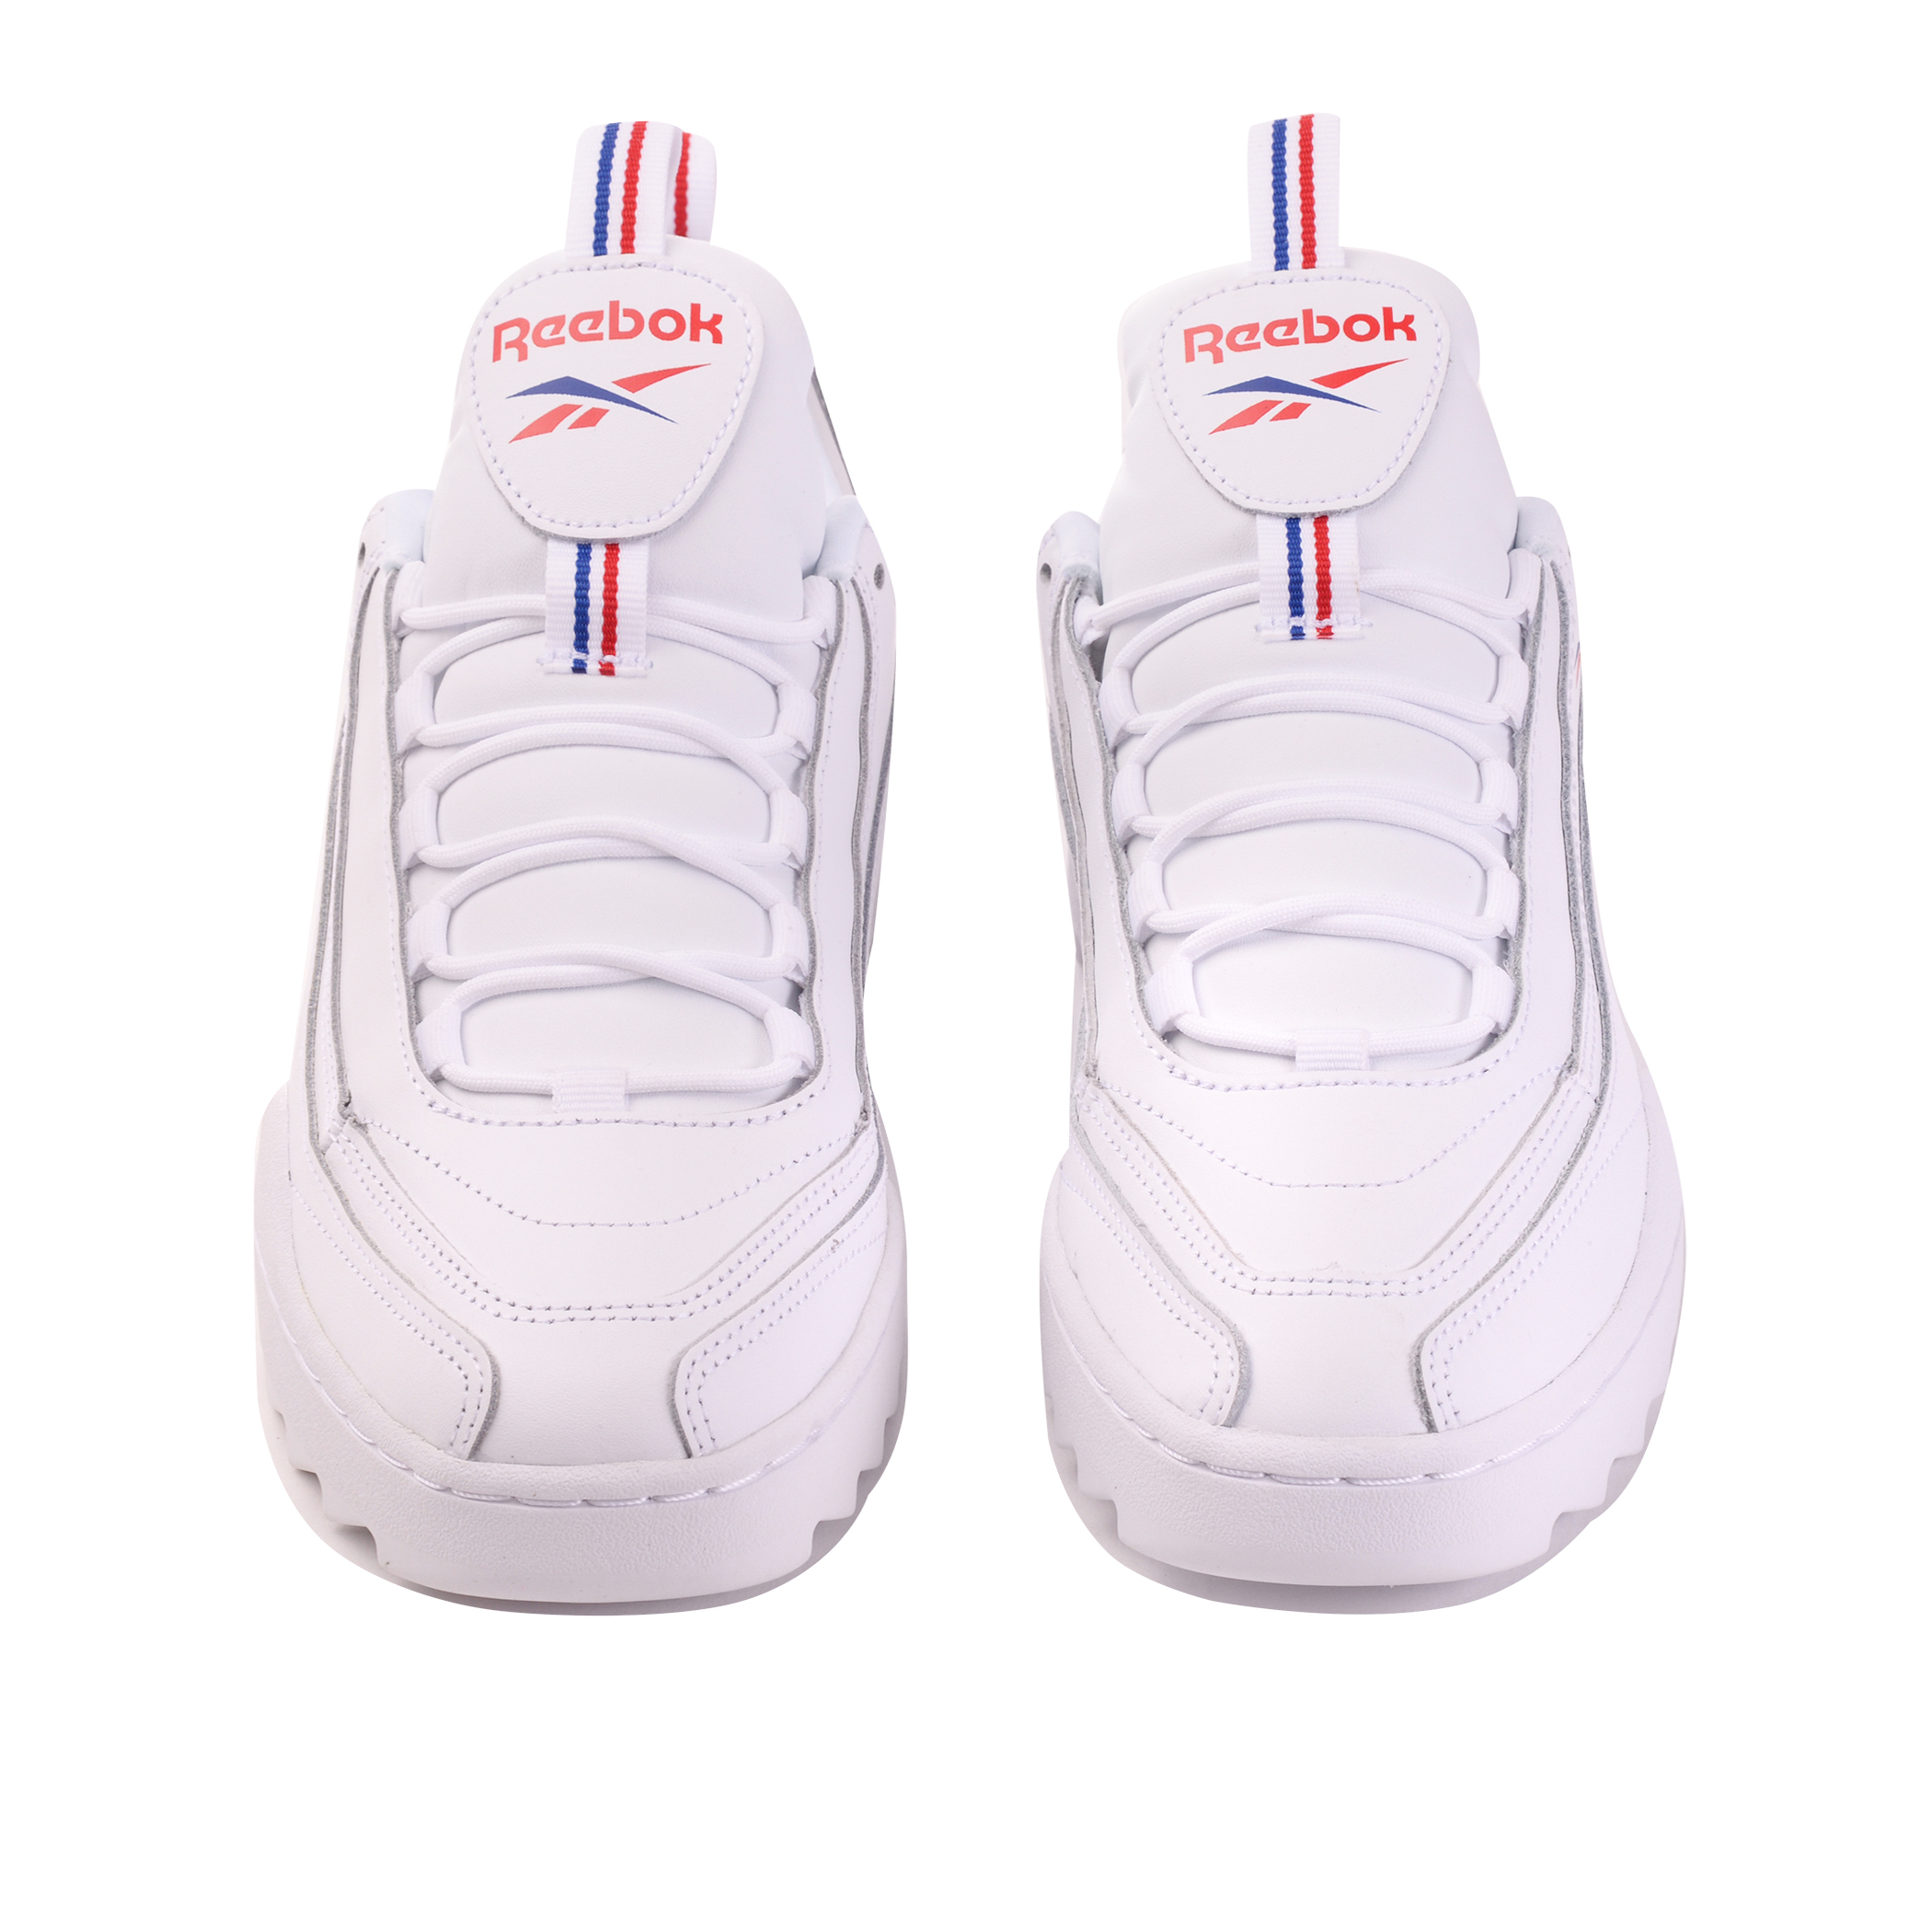 0812786af9c Кроссовки Reebok Classic Rivyx Ripple WHITE EXCELLENT RED COLLEGIATE ROYAL  - фото 3